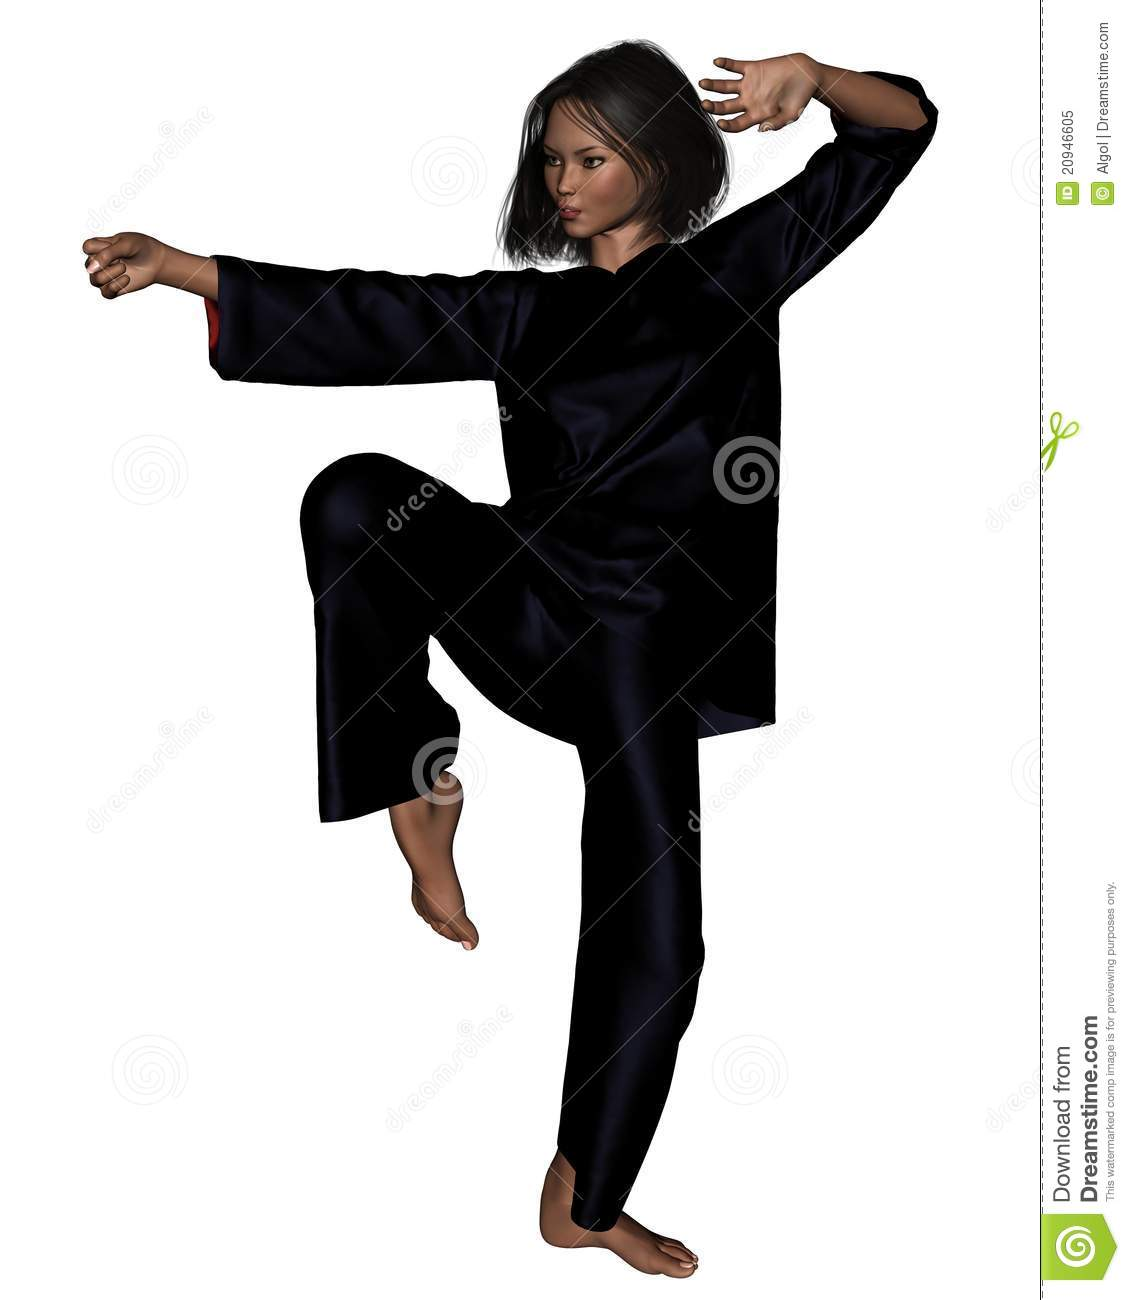 tai chi woman 2 royalty free stock photo image 20946605 Black and White Heart Clip Art Black and White Heart Clip Art